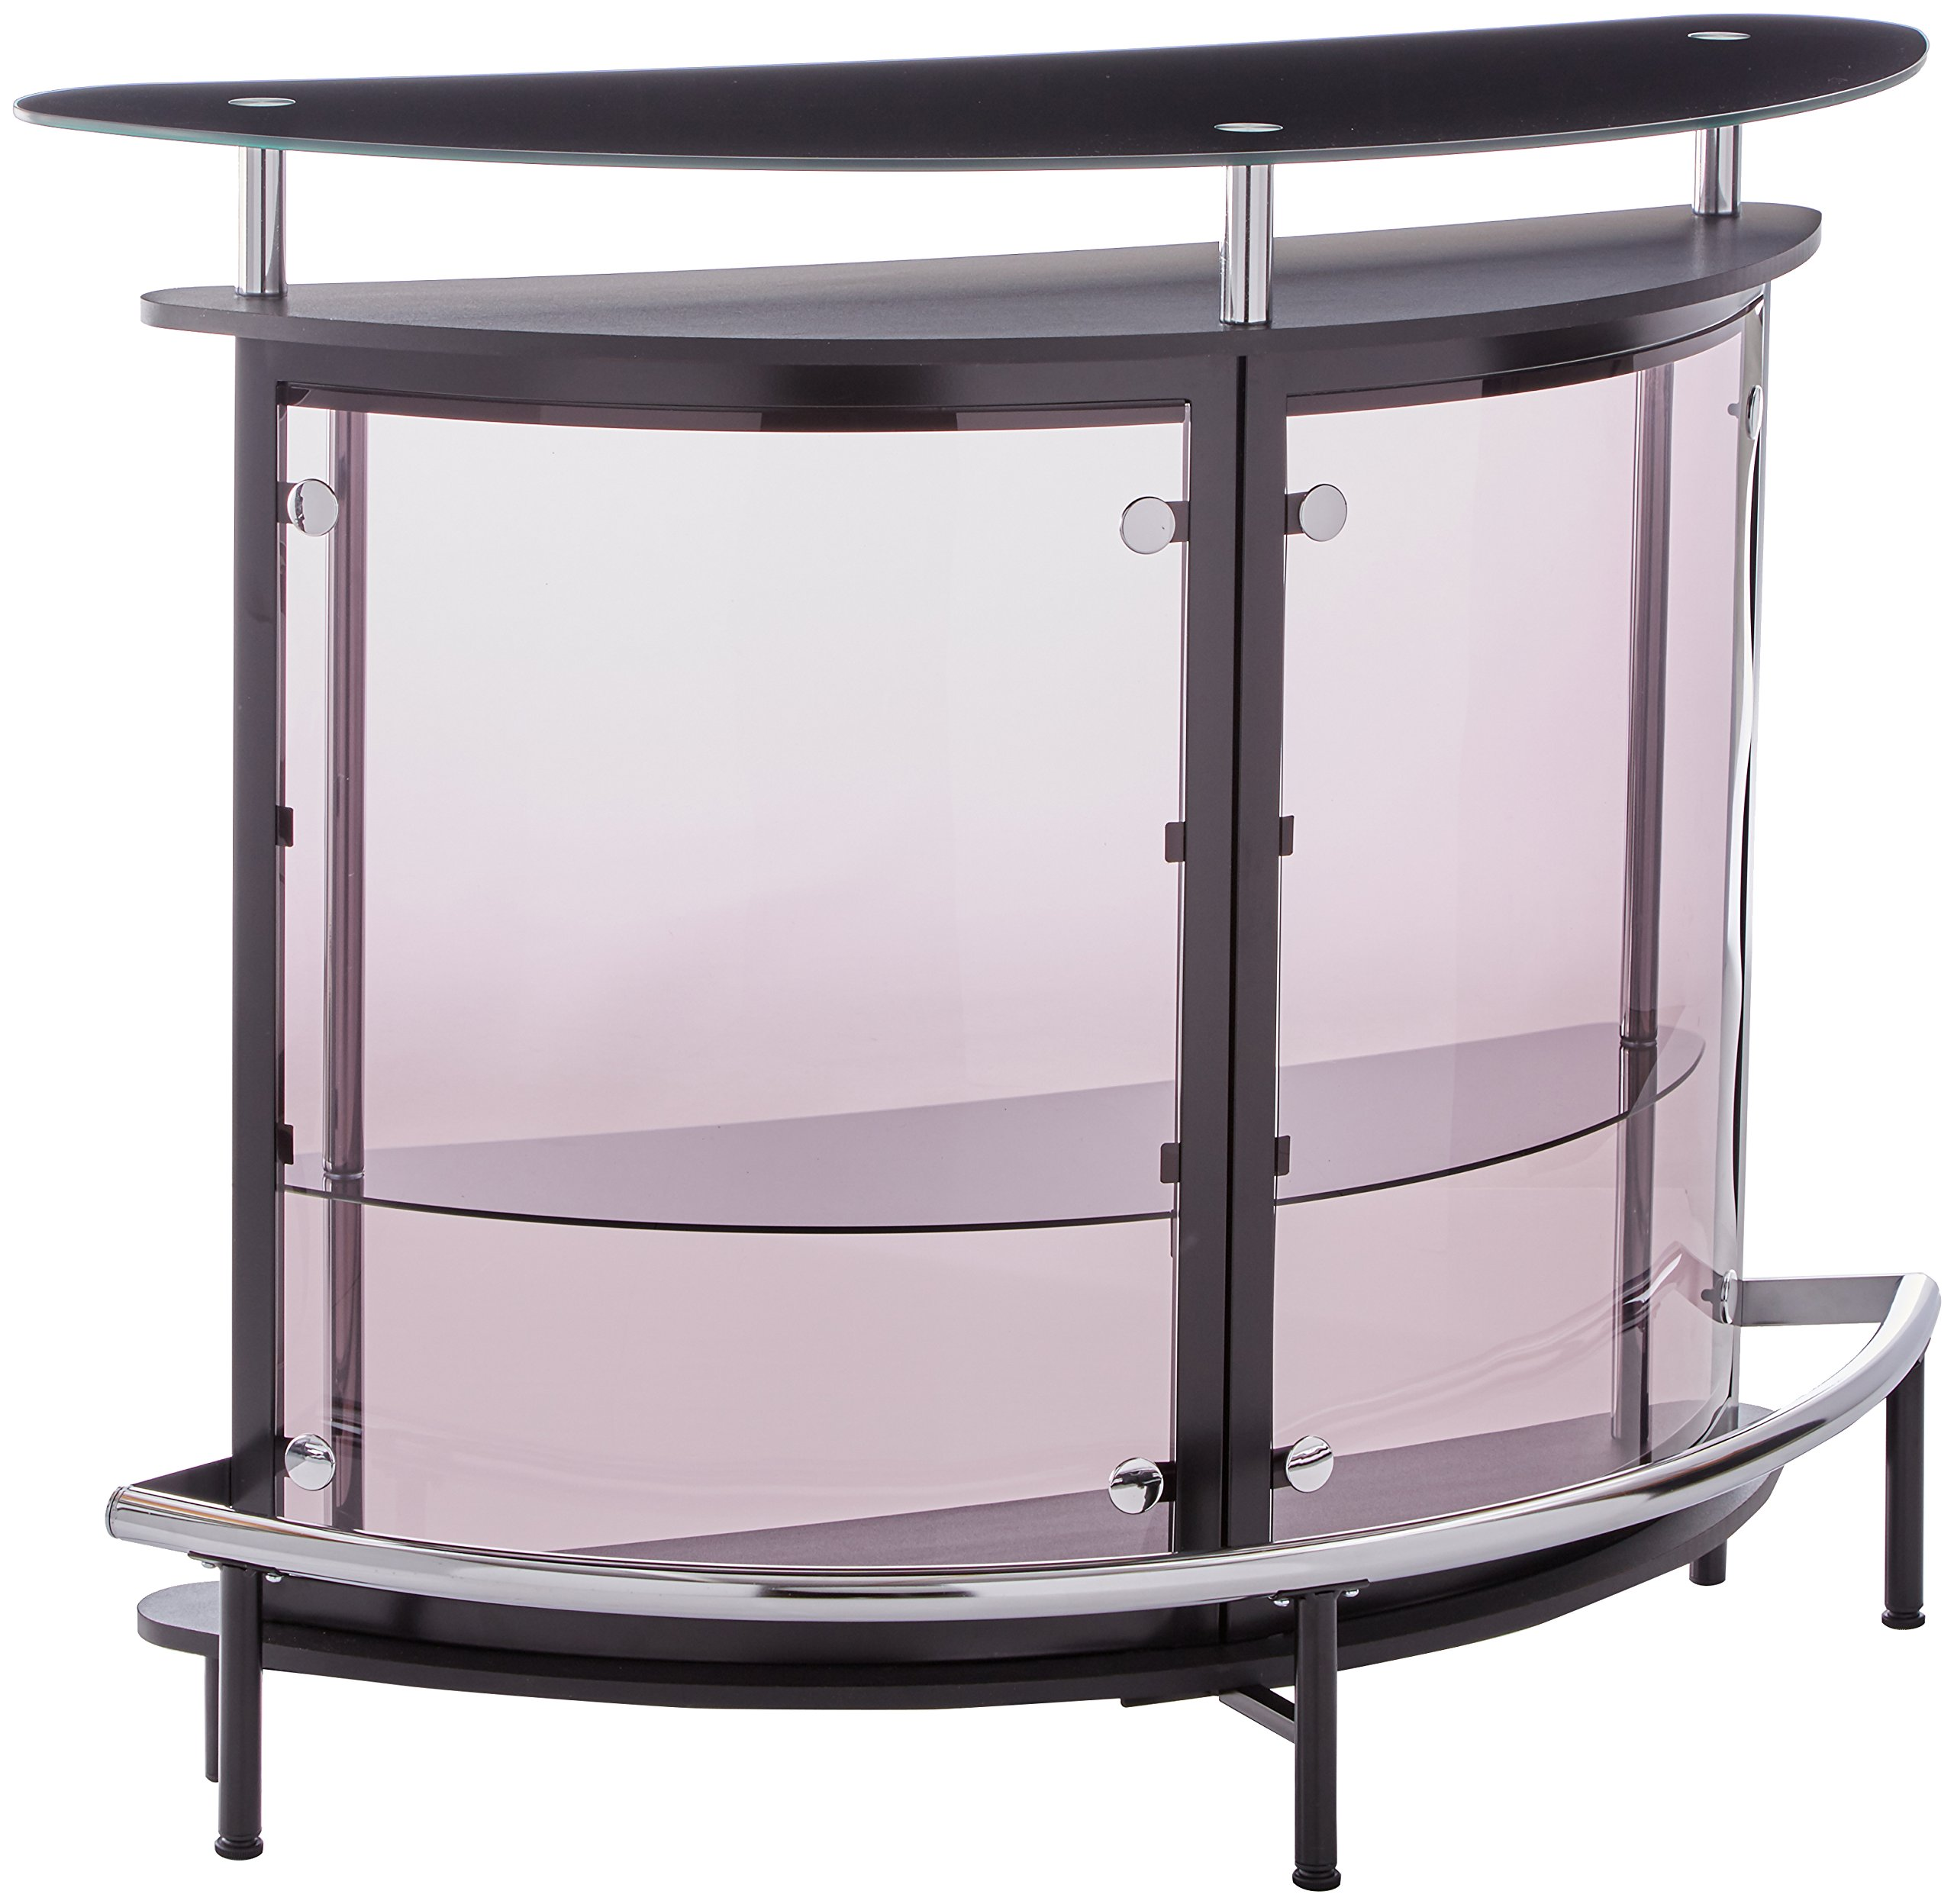 Bar Unit with Acrylic Front Black, Chrome and Smoke by Coaster Home Furnishings